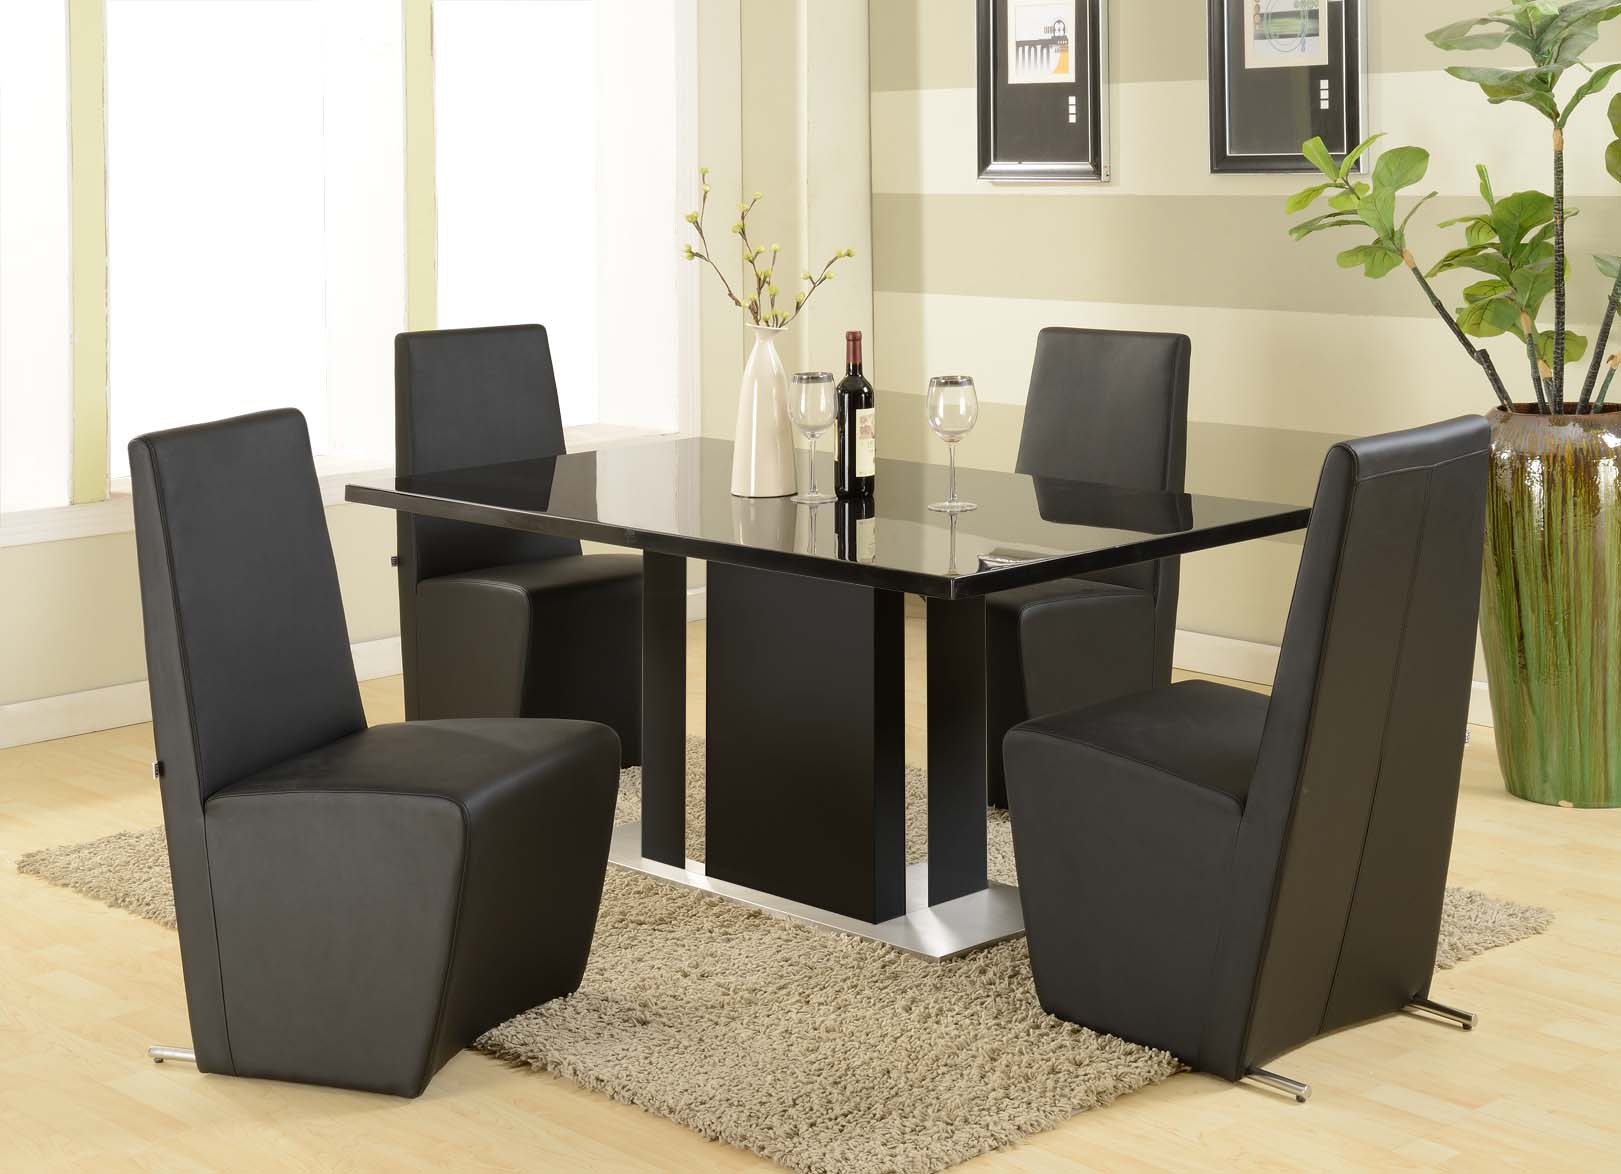 Modern furniture table home design roosa for Kitchen table set 6 chairs